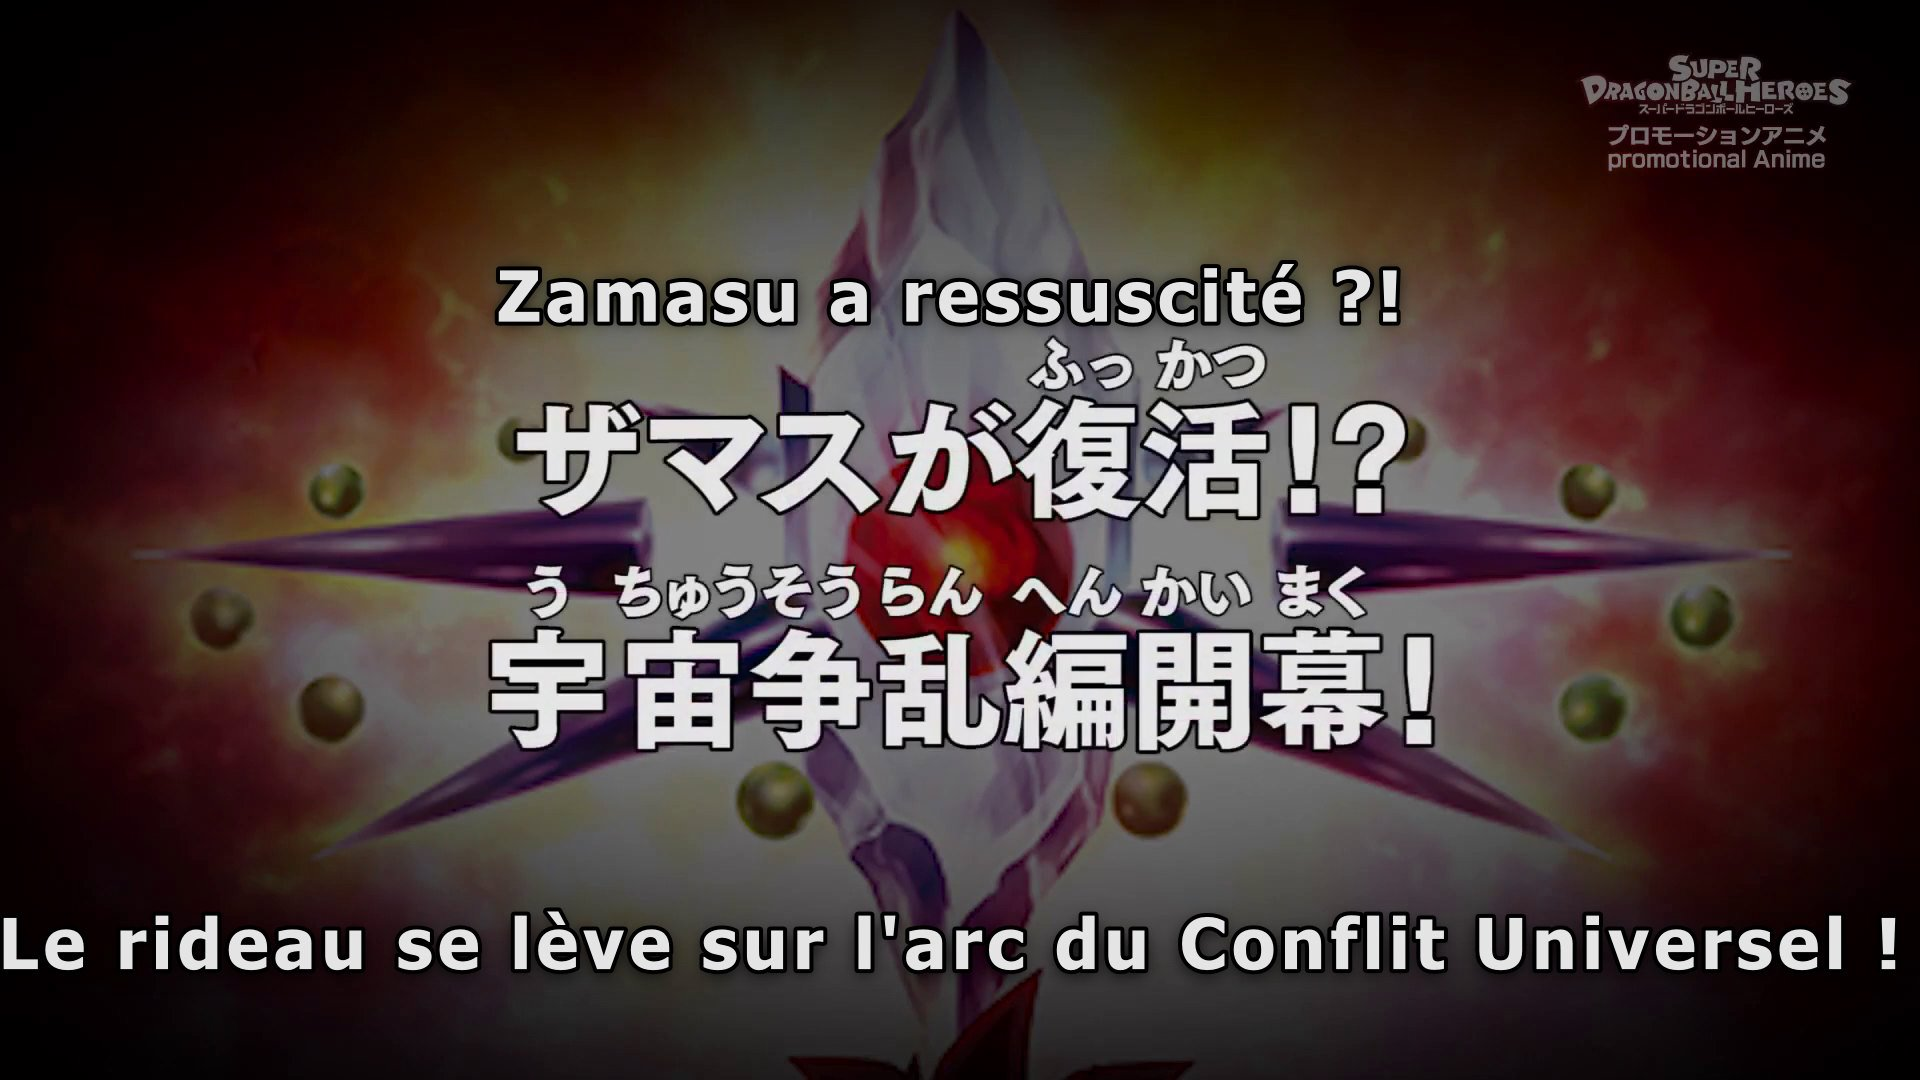 Fansub - Super Dragon Ball Heroes Episode 7